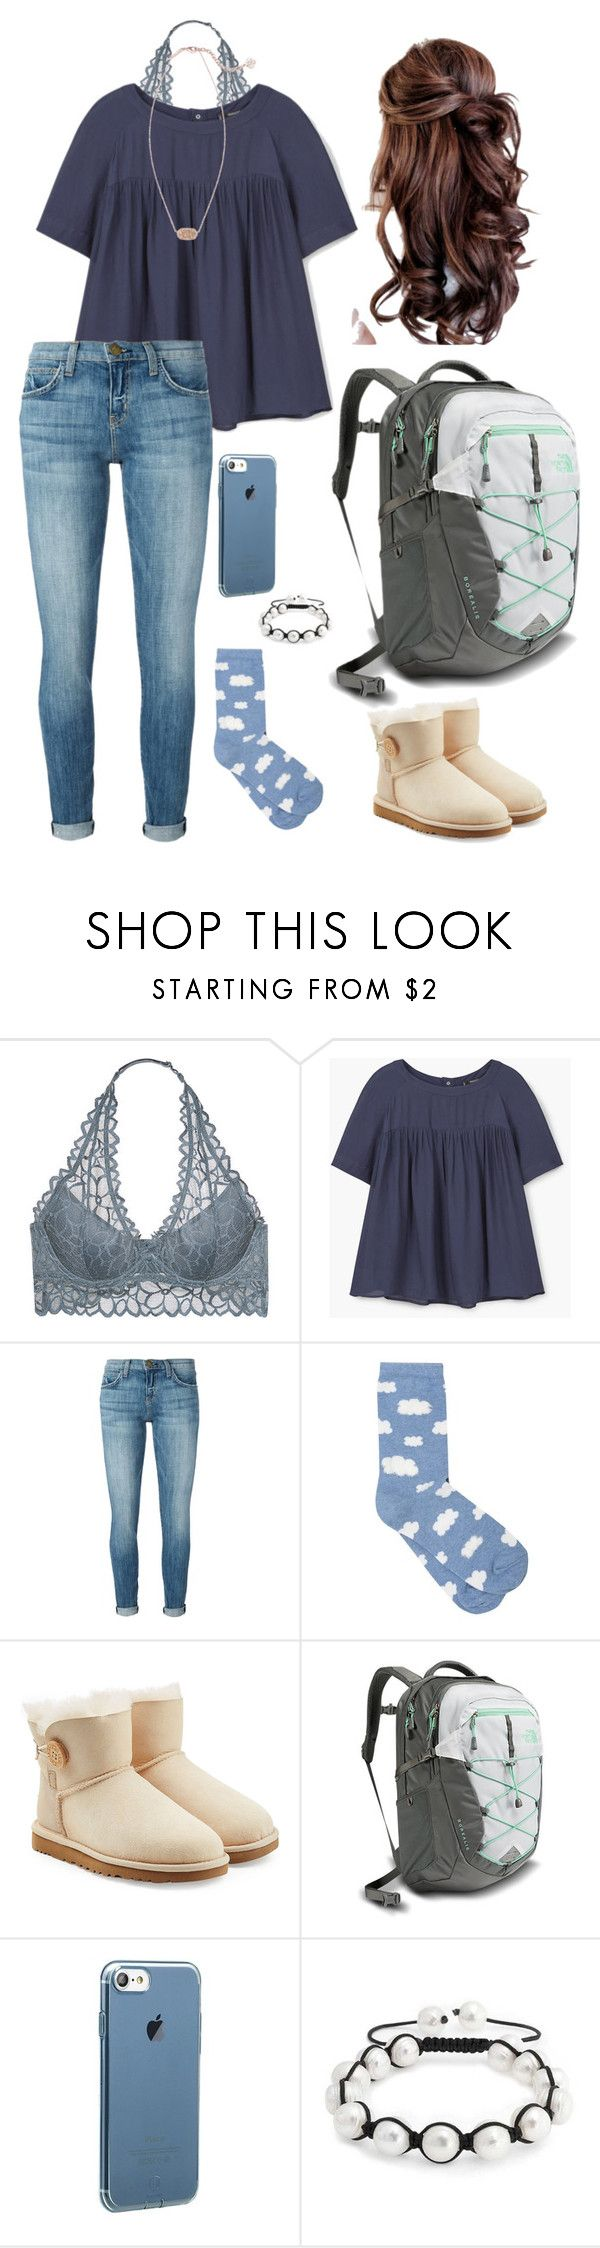 """""""Flinter"""" by mirandamf on Polyvore featuring Victoria's Secret, MANGO, Current/Elliott, M&Co, UGG Australia, The North Face, Bling Jewelry and Kendra Scott"""